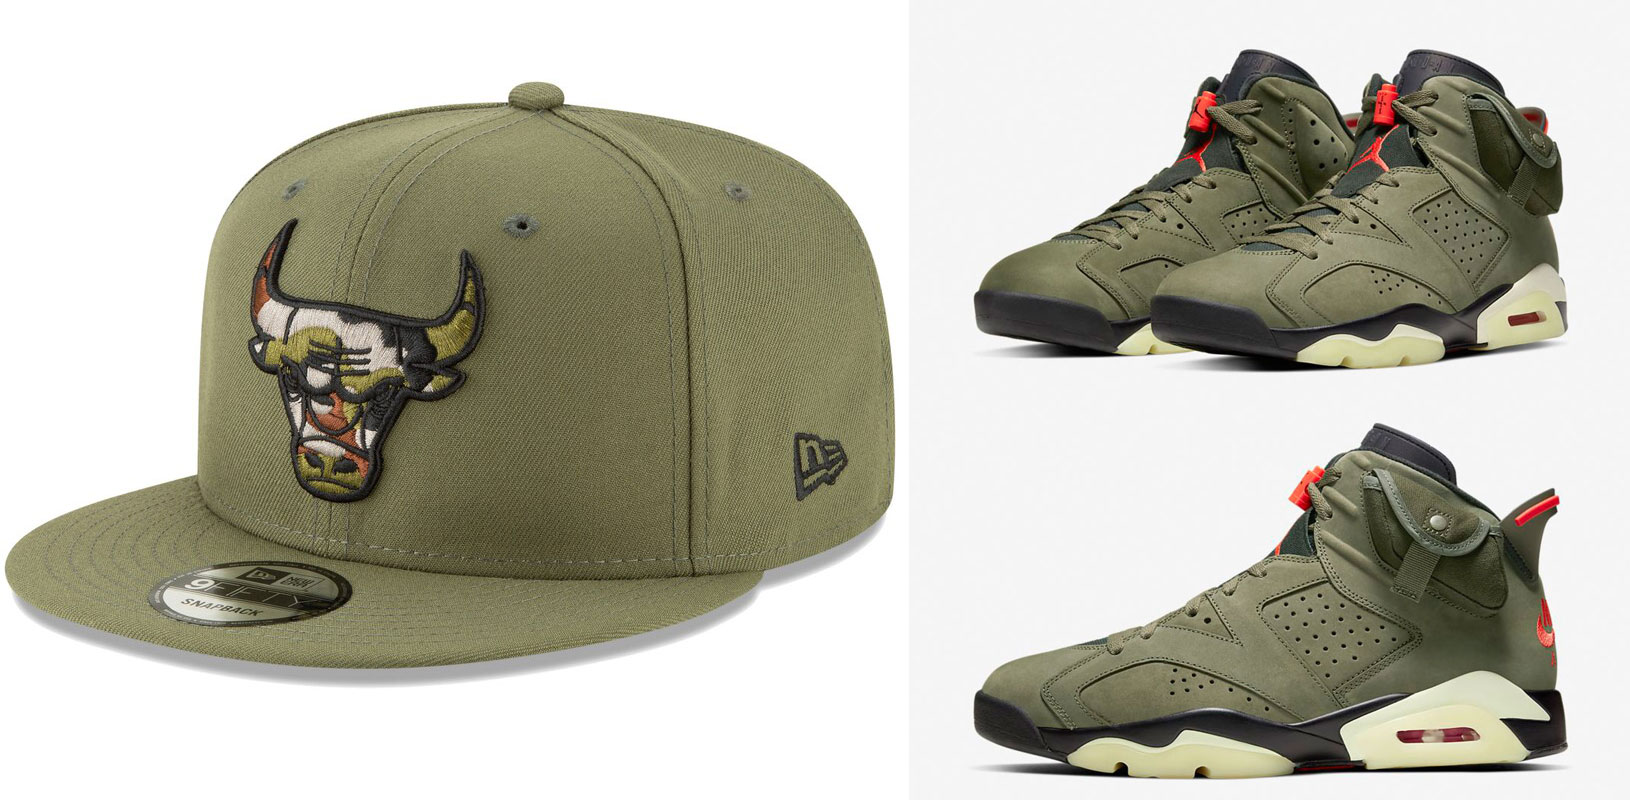 travis-scott-air-jordan-6-olive-bulls-hat-match-2